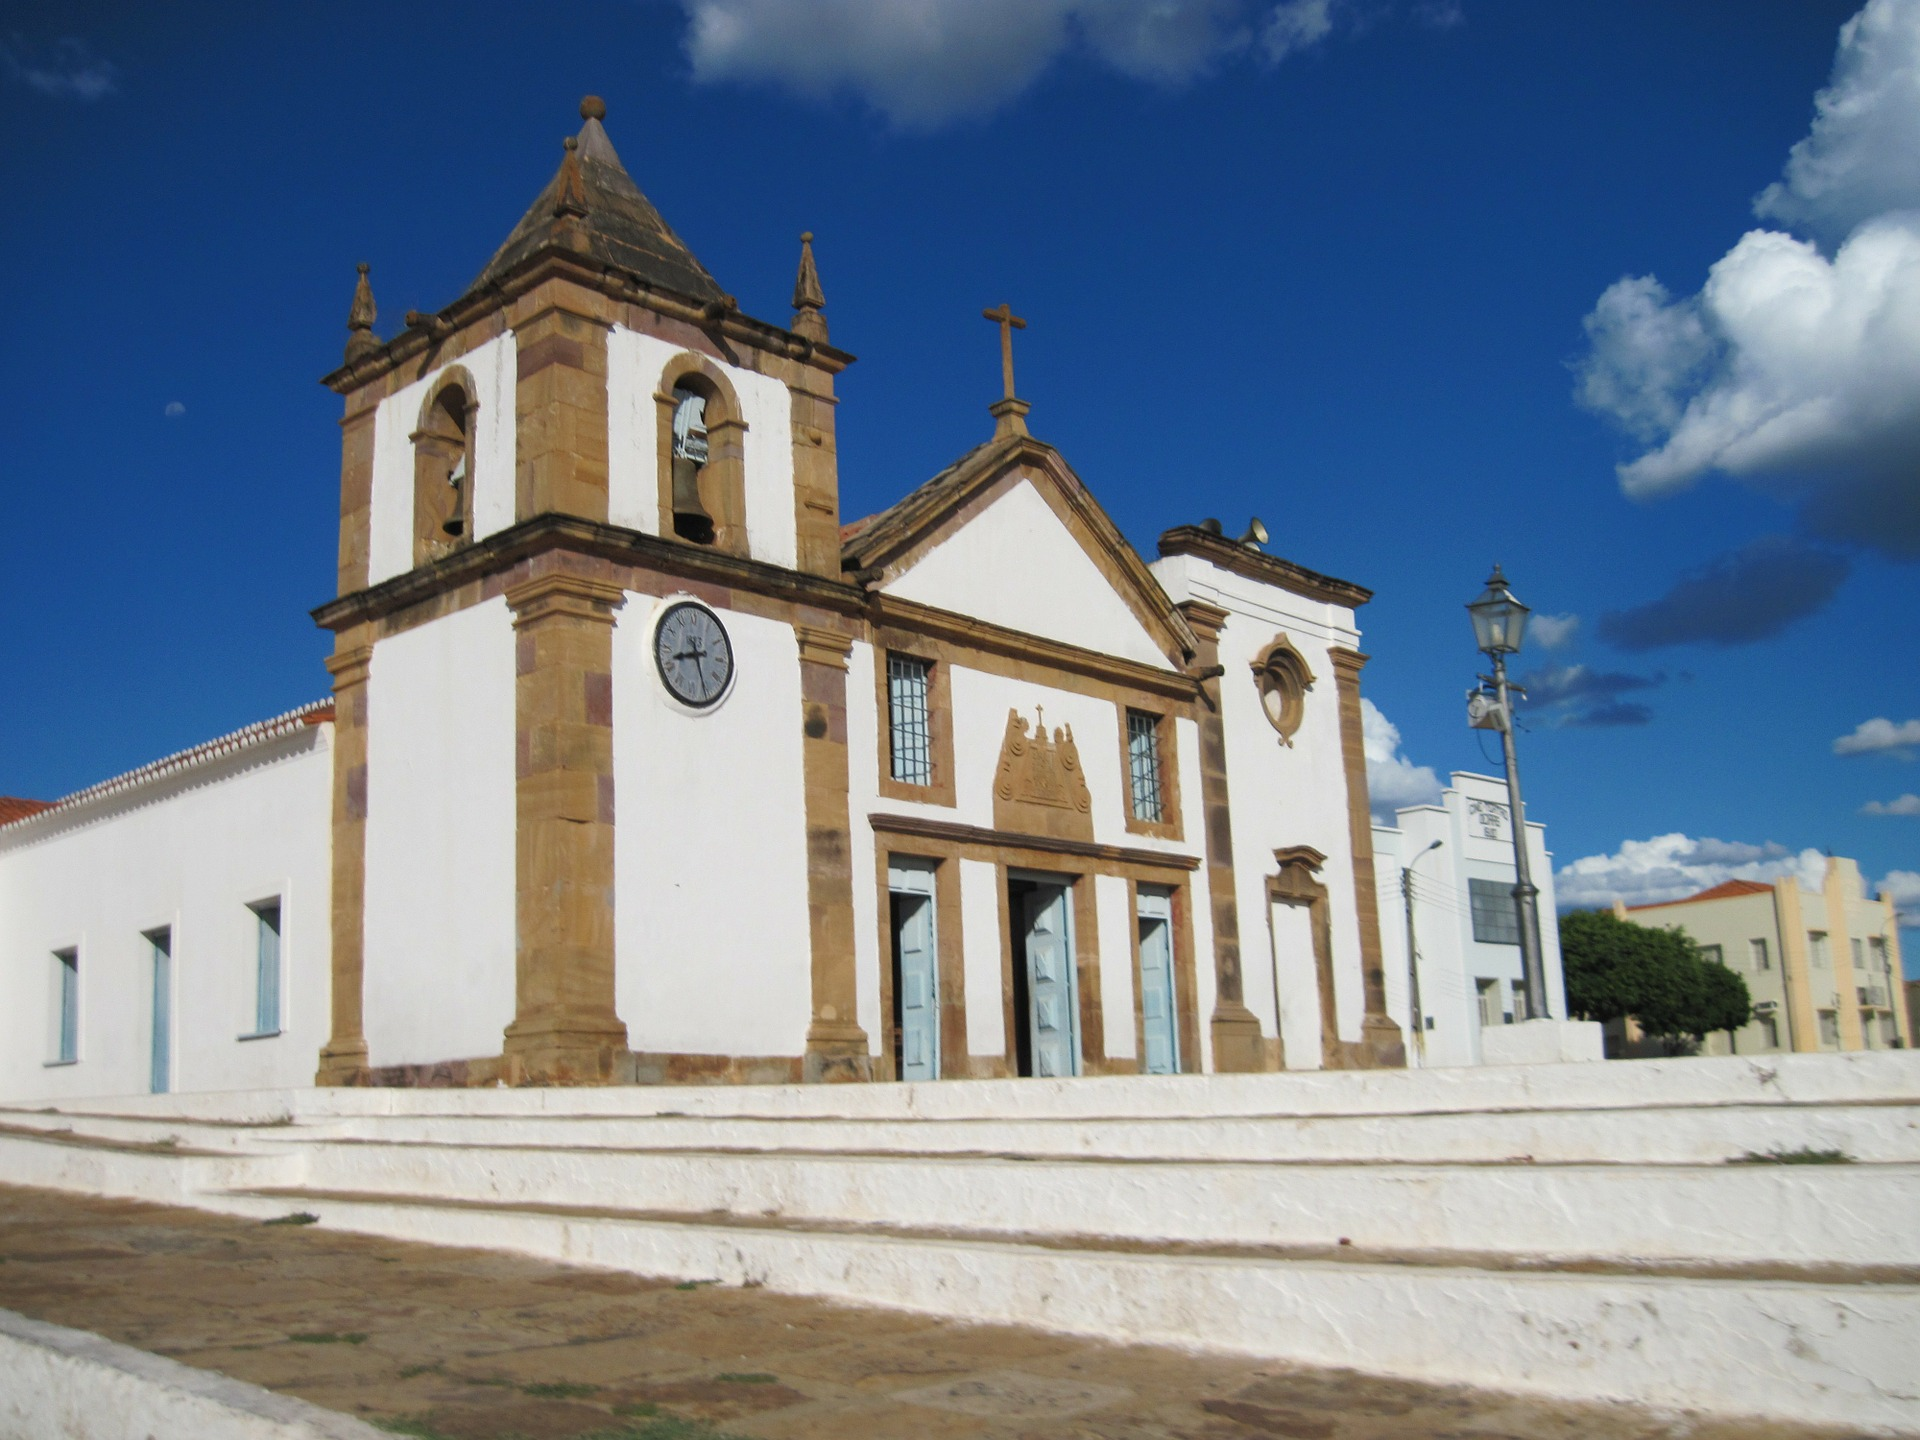 Alegrete do Piauí - Piauí